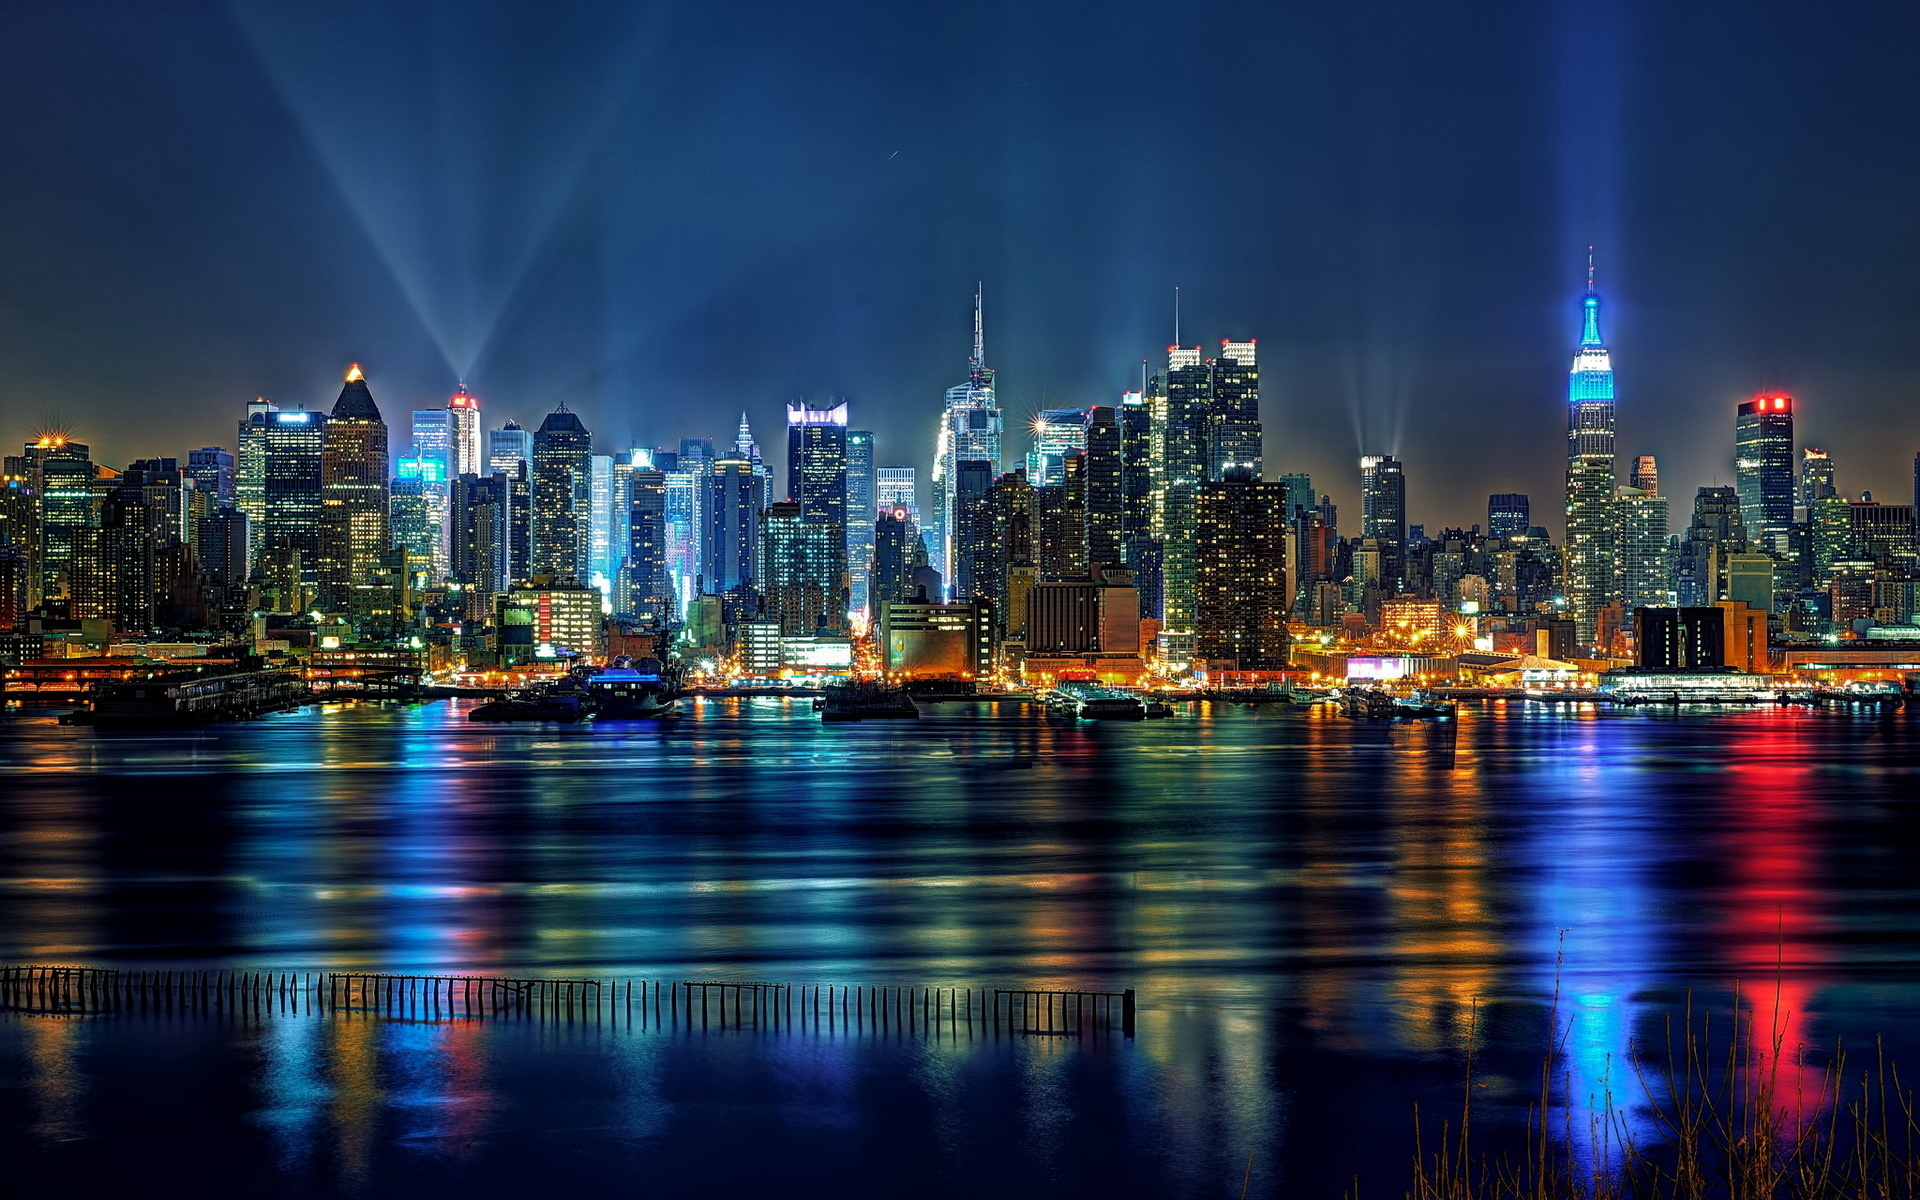 New york wallpaper 12 1920x1200 for Sfondi desktop new york